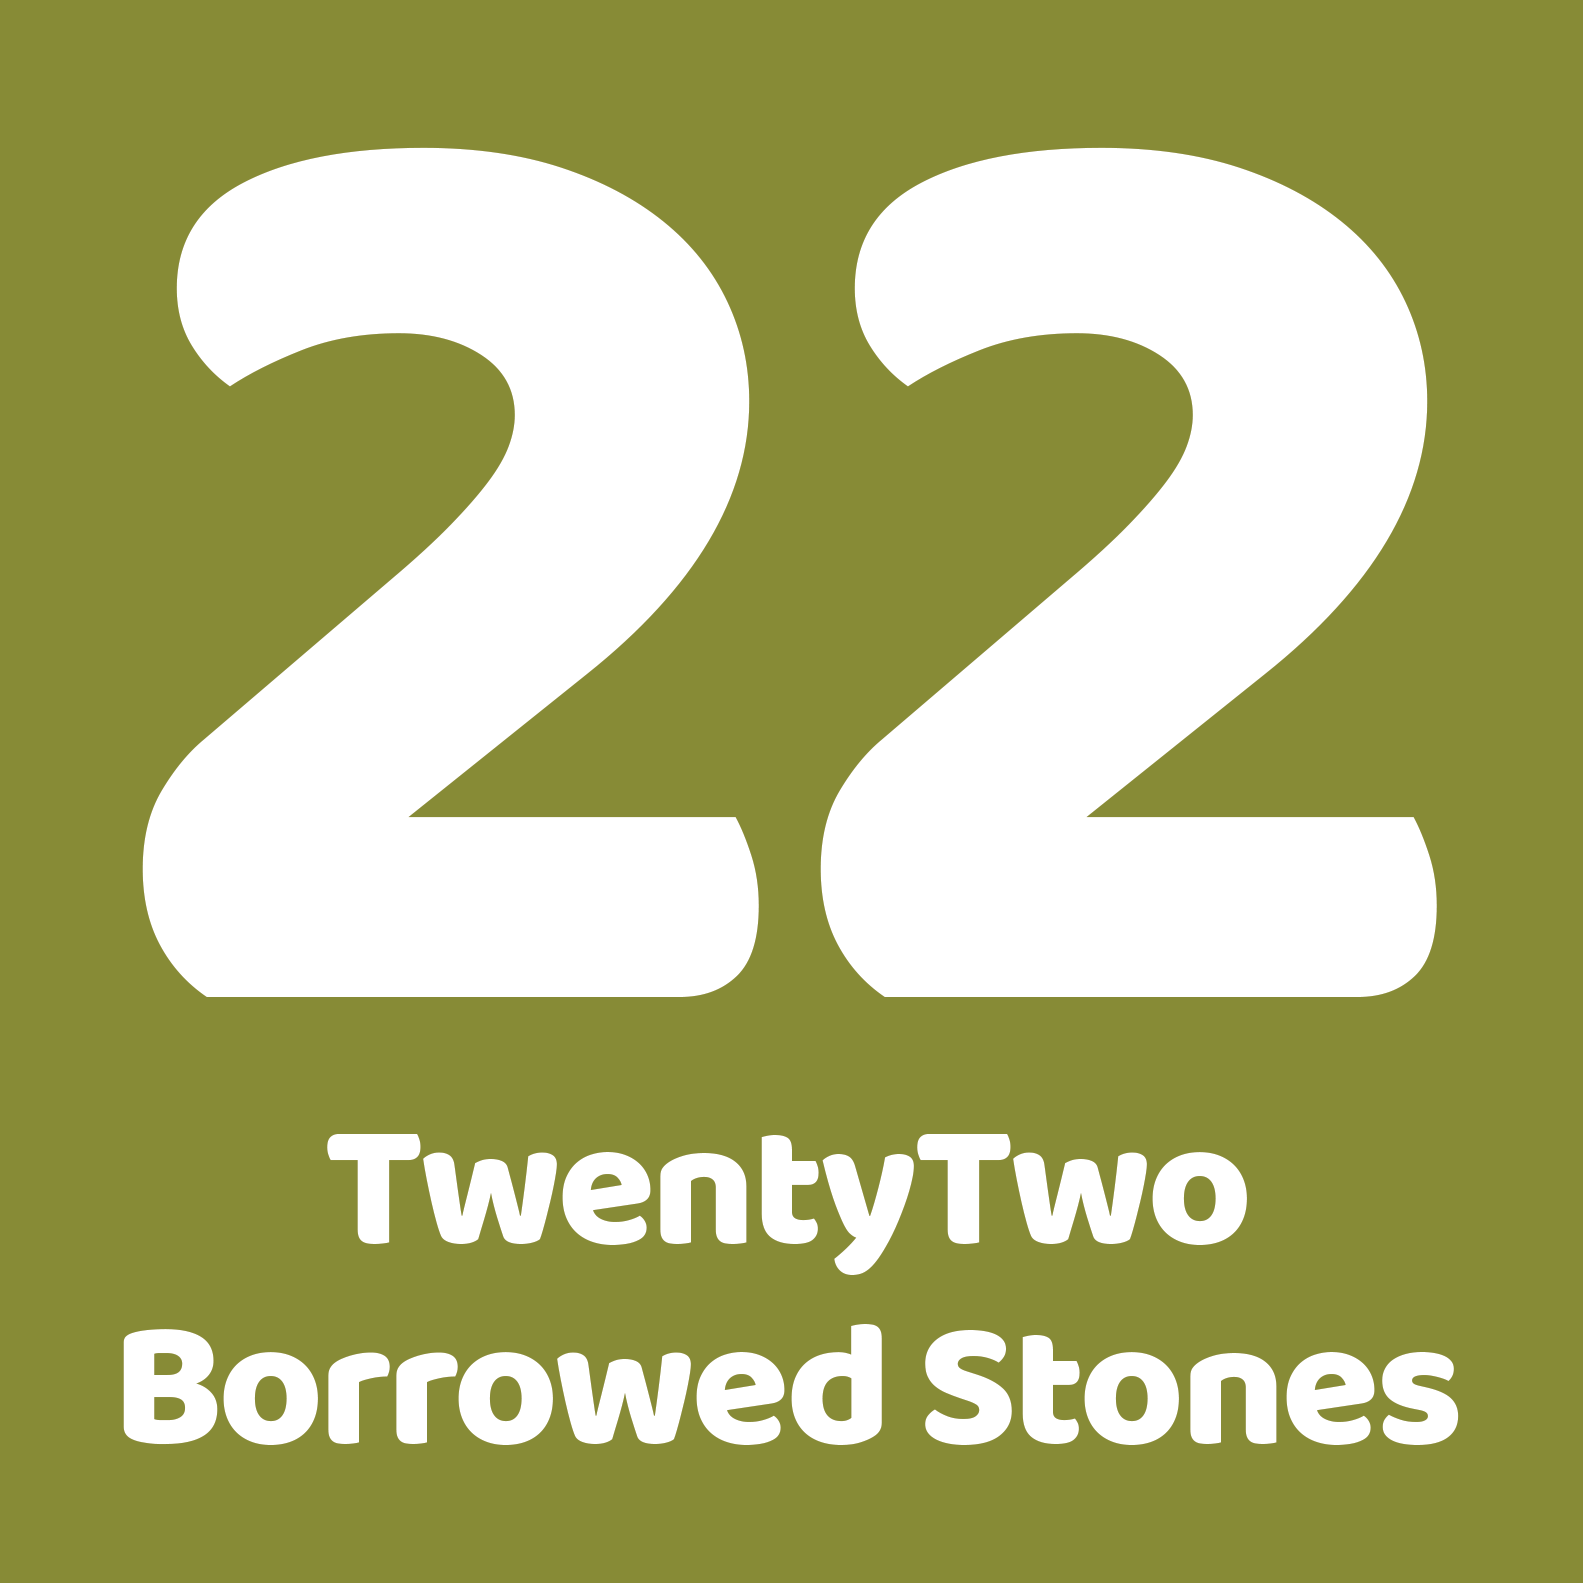 TwentyTwo Borrowed Stones